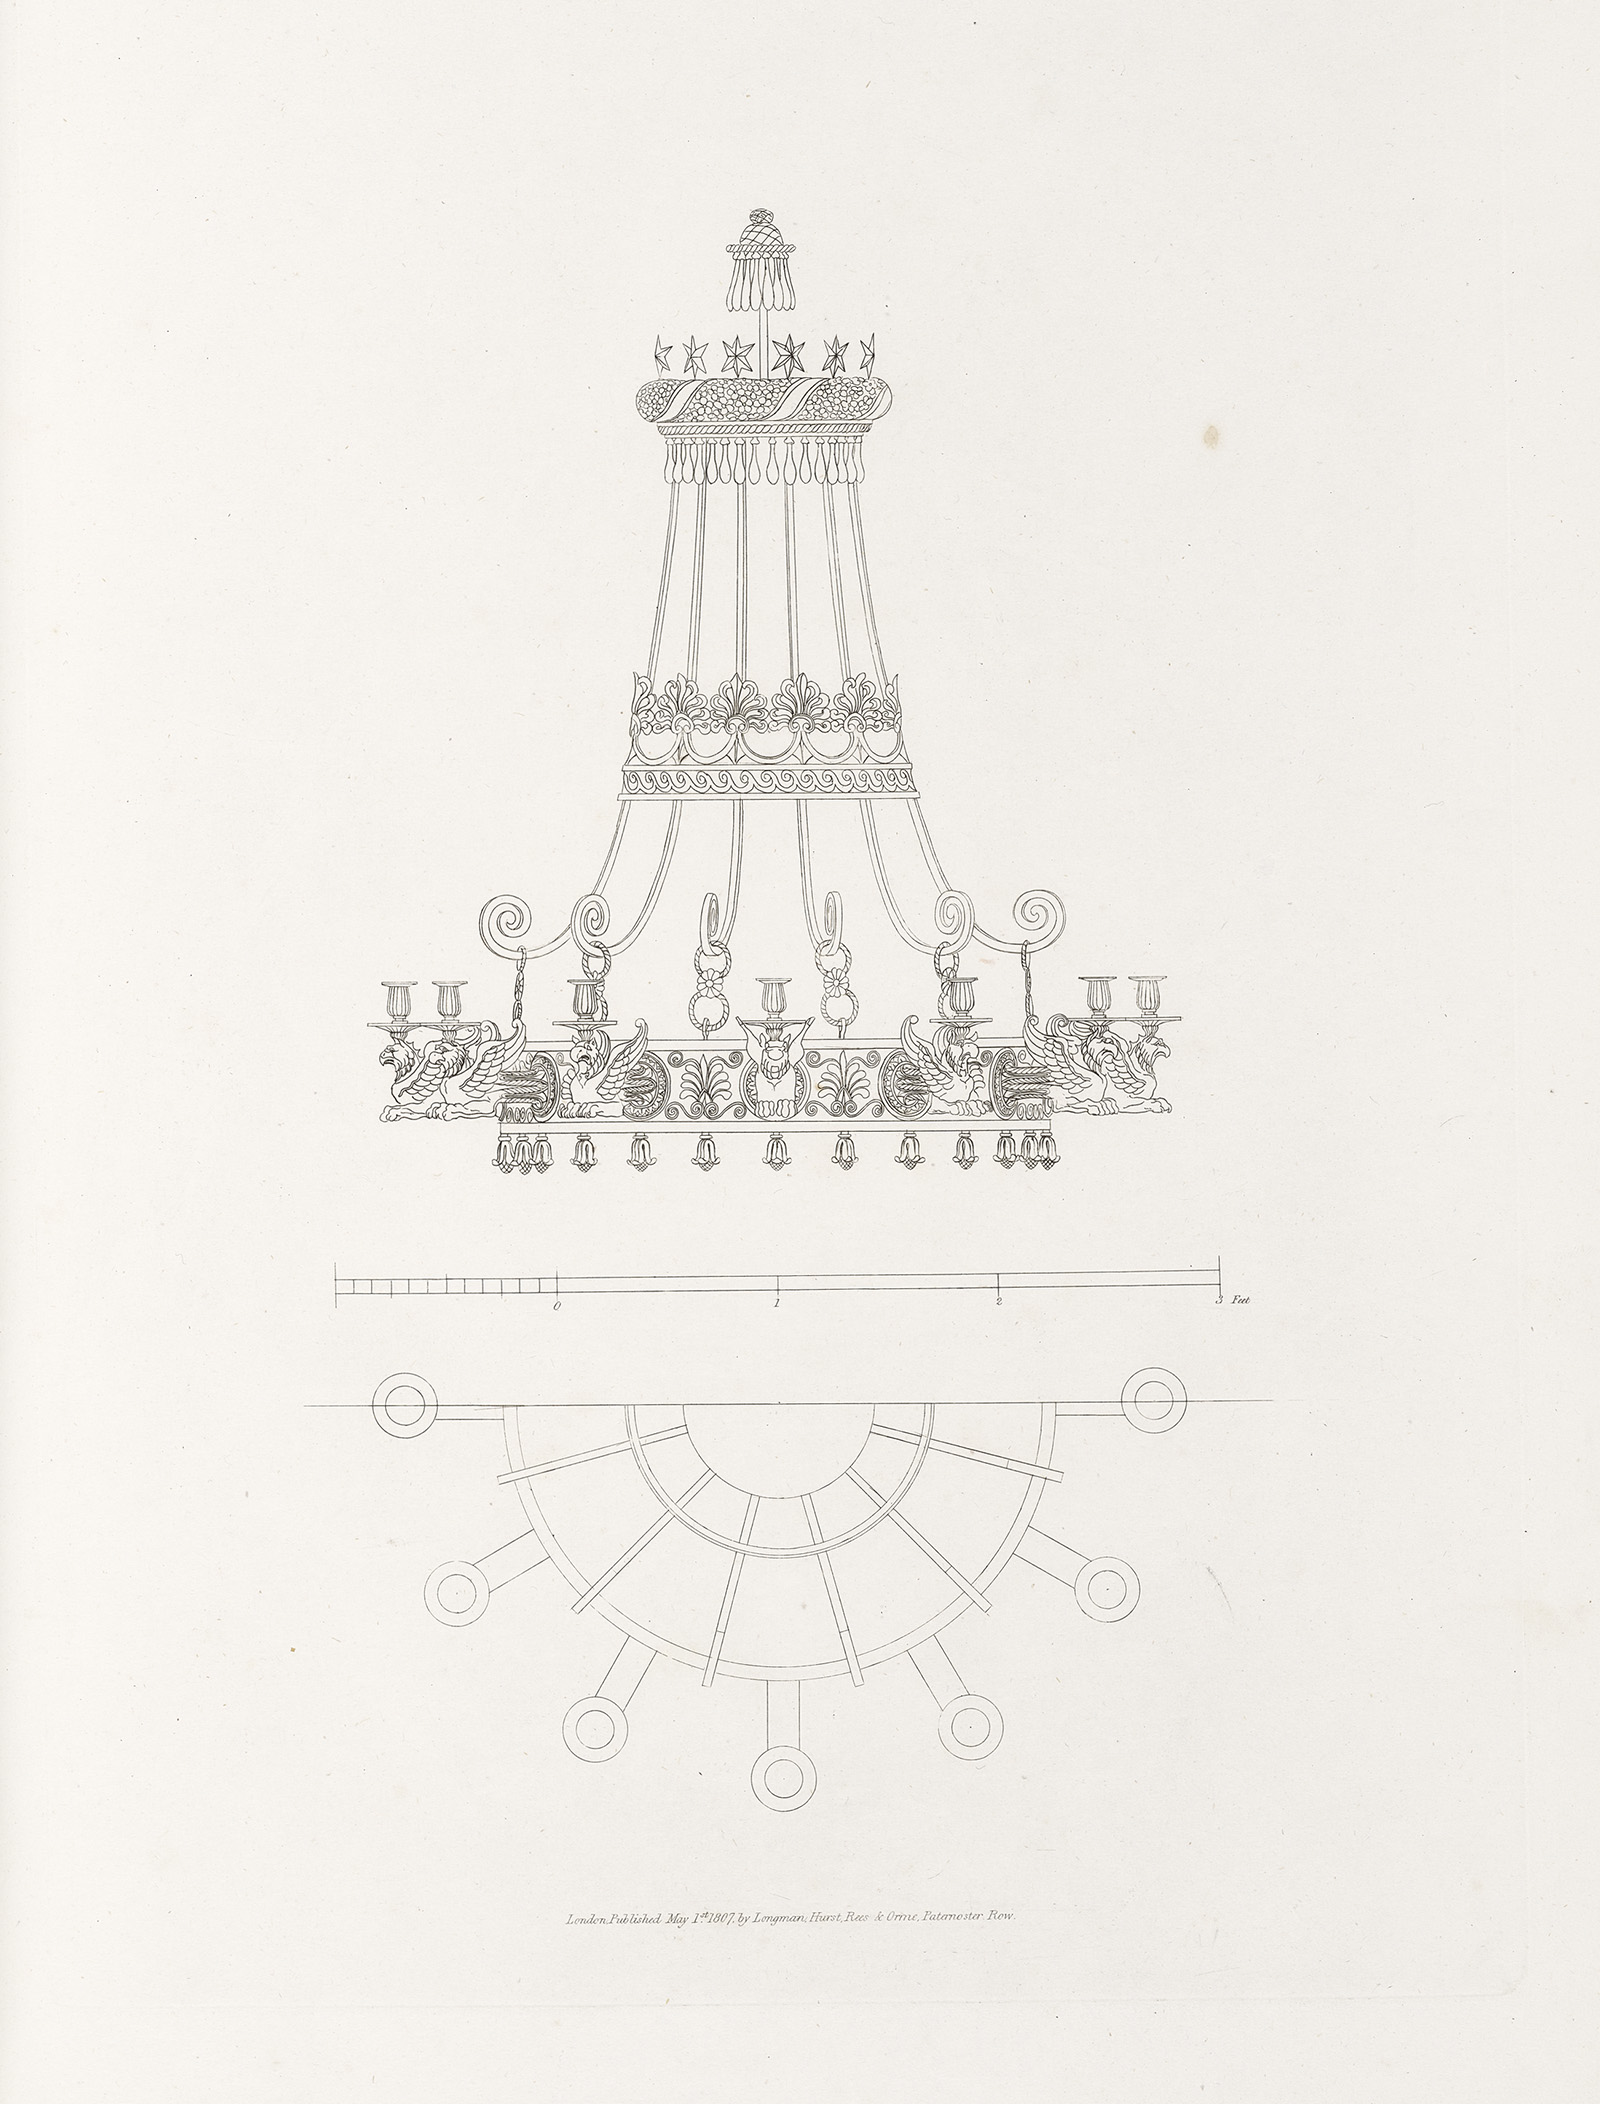 Sketch of a chandelier.